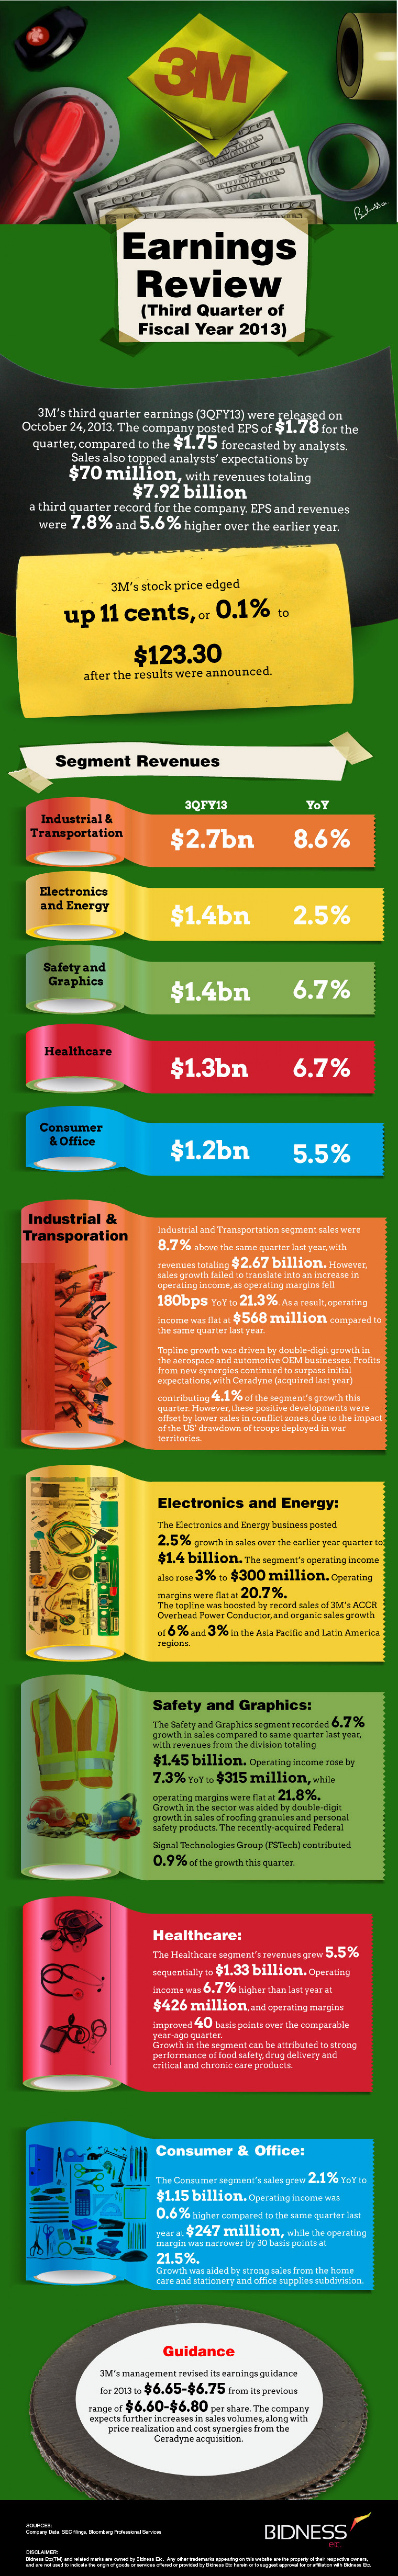 3M (MMM) Earnings Review Infographic